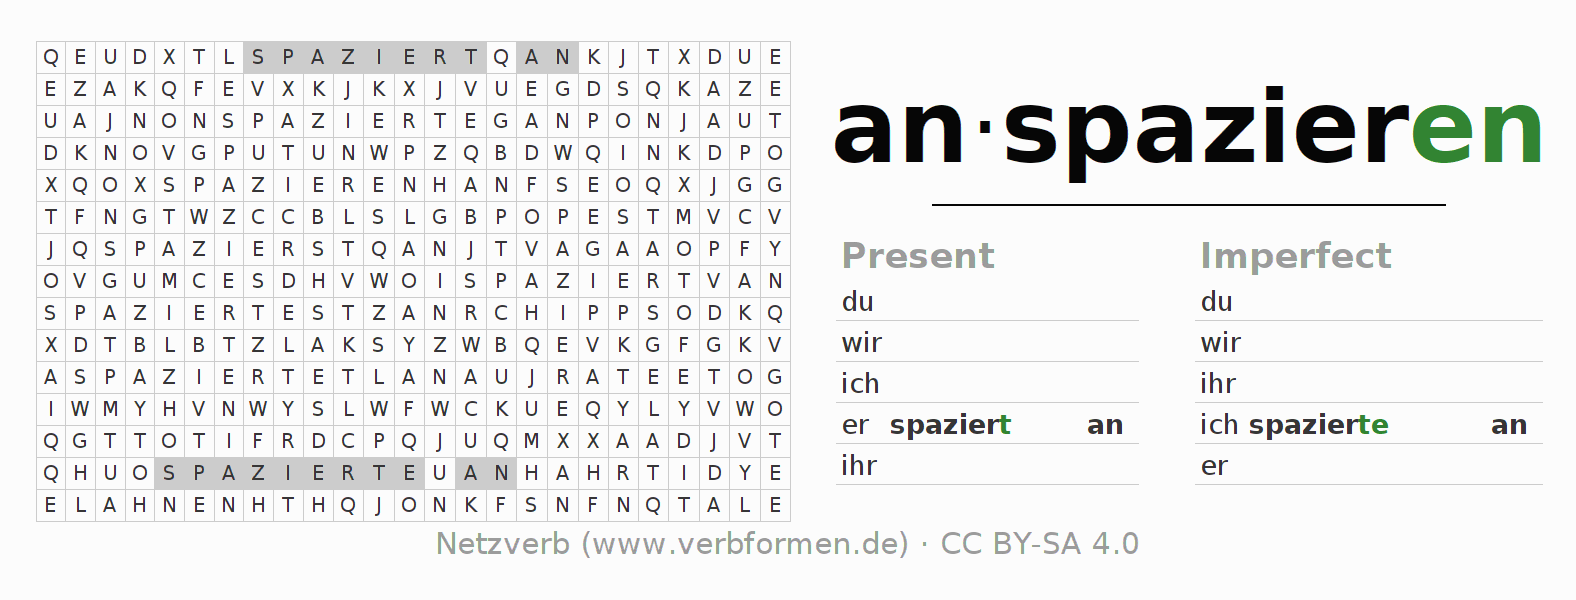 Word search puzzle for the conjugation of the verb anspazieren